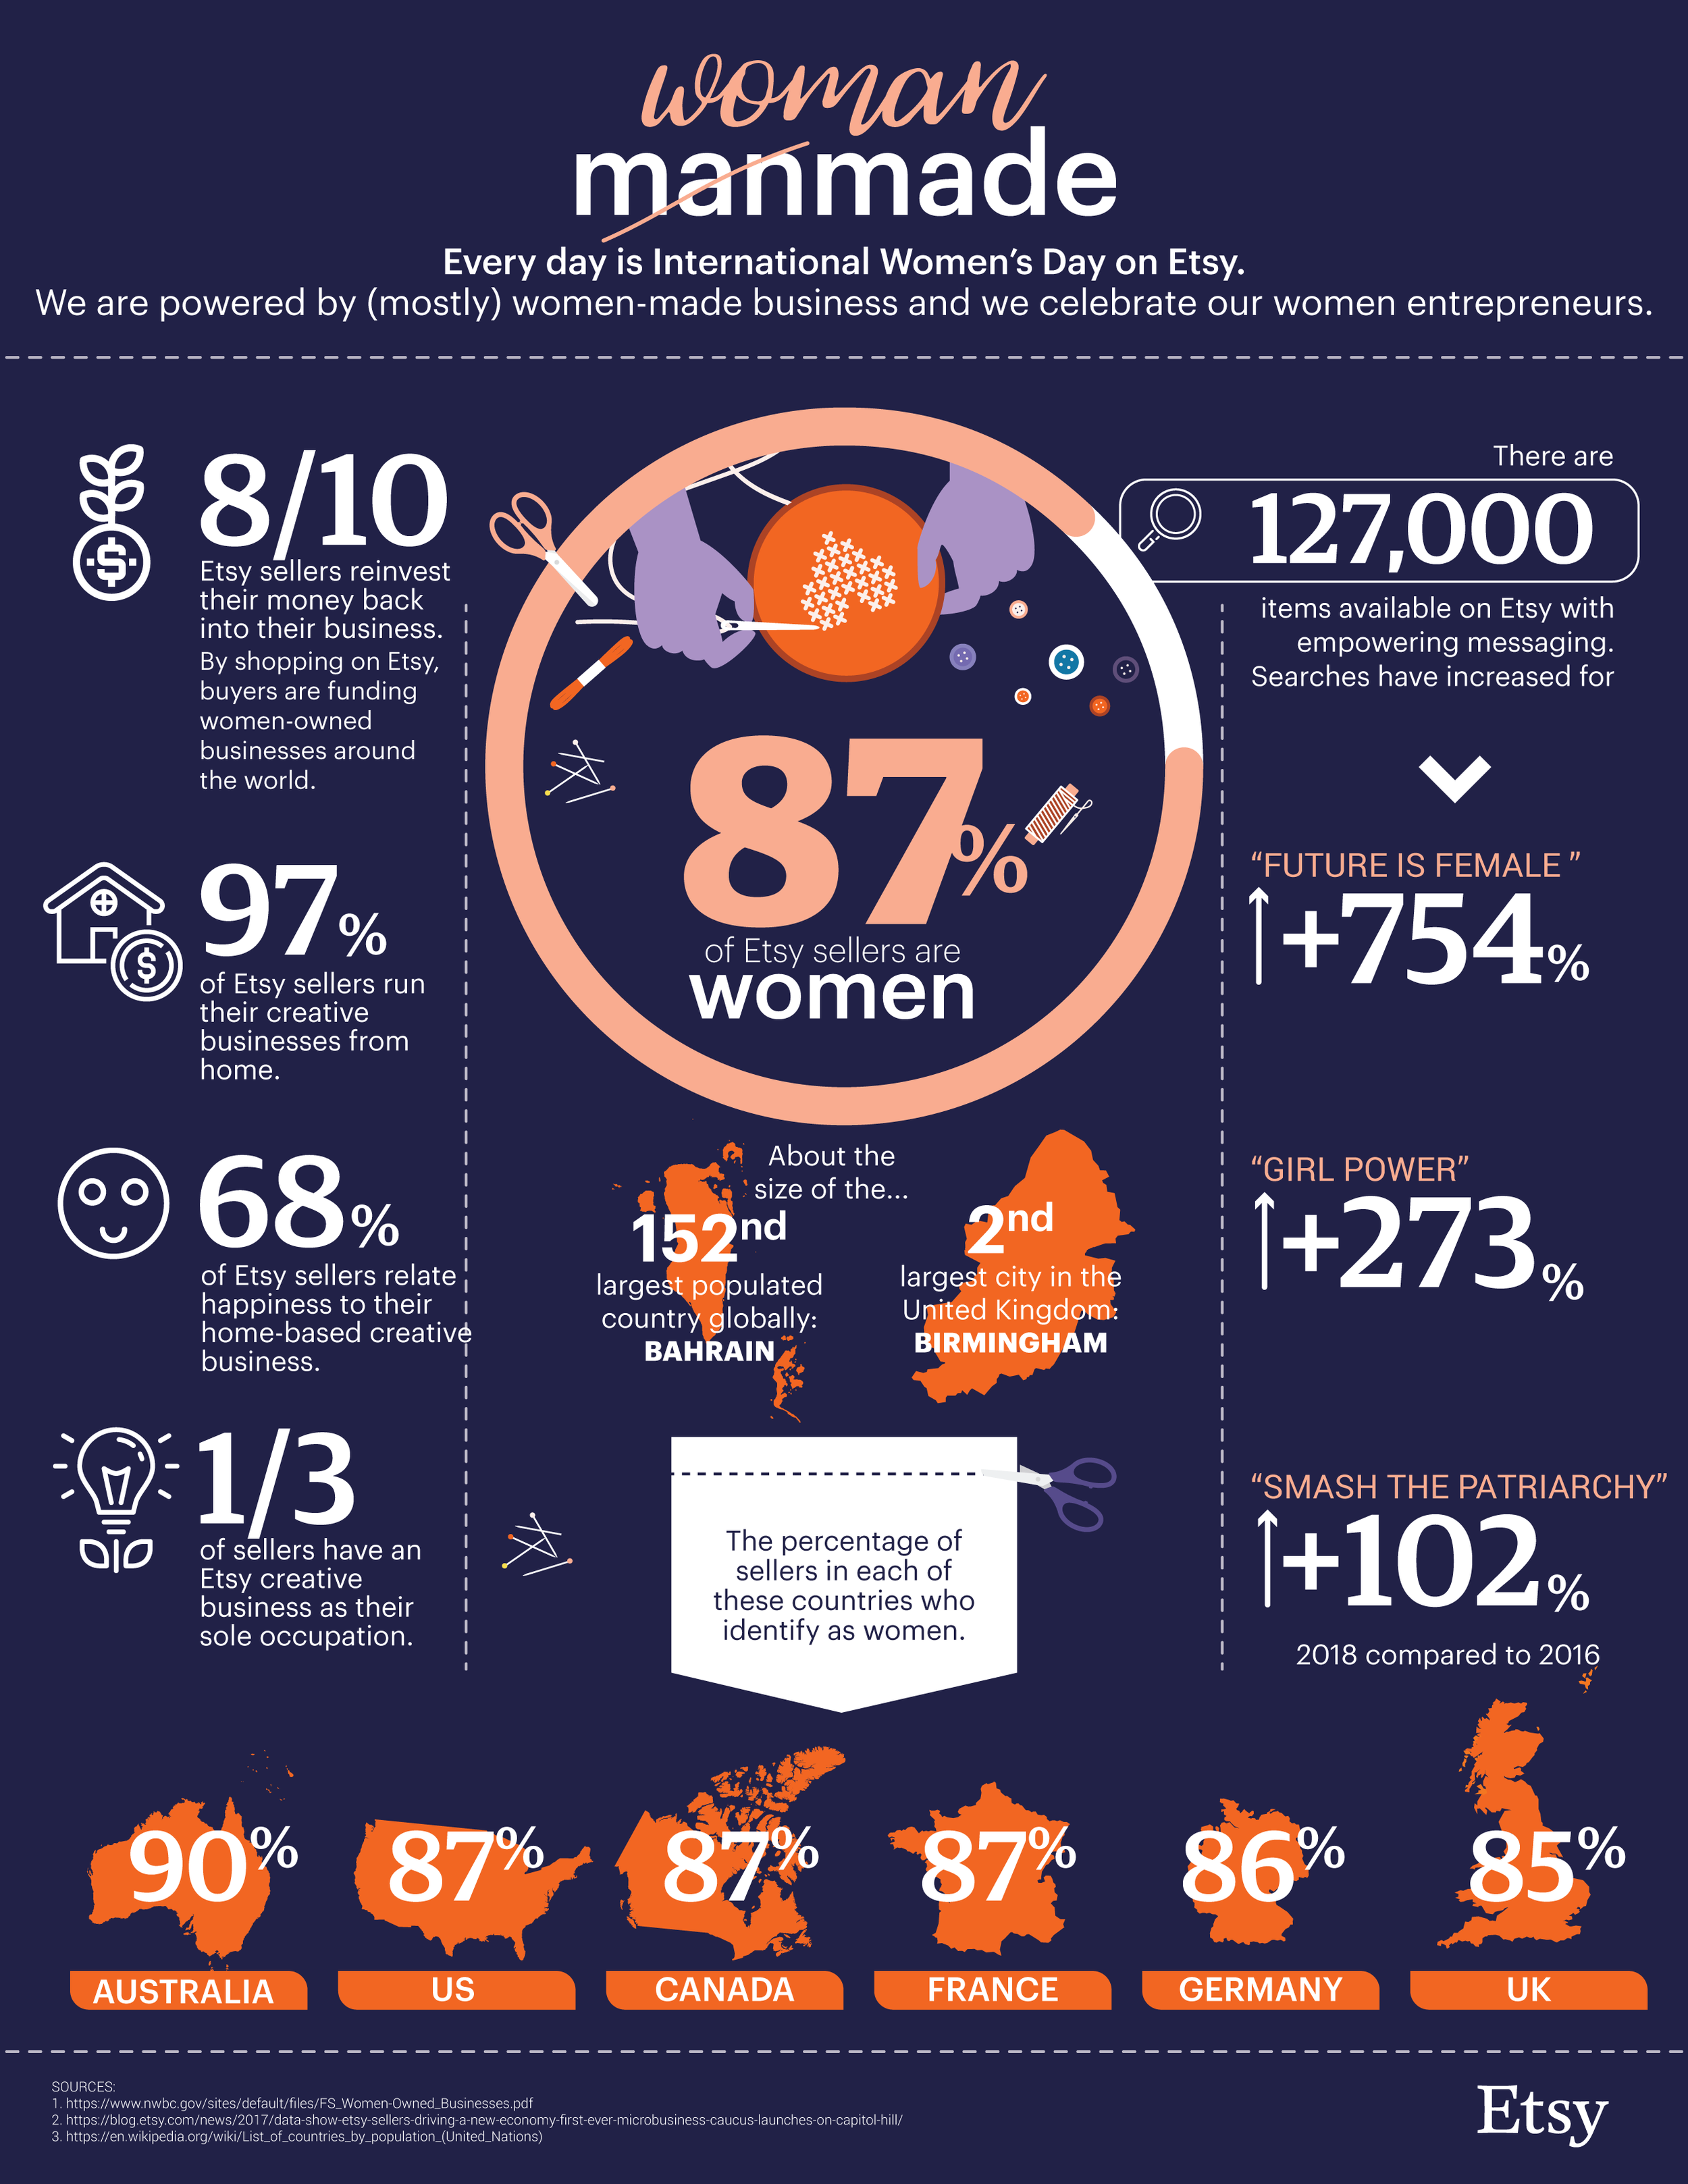 Infographic-Etsy-March-7th-UK.png